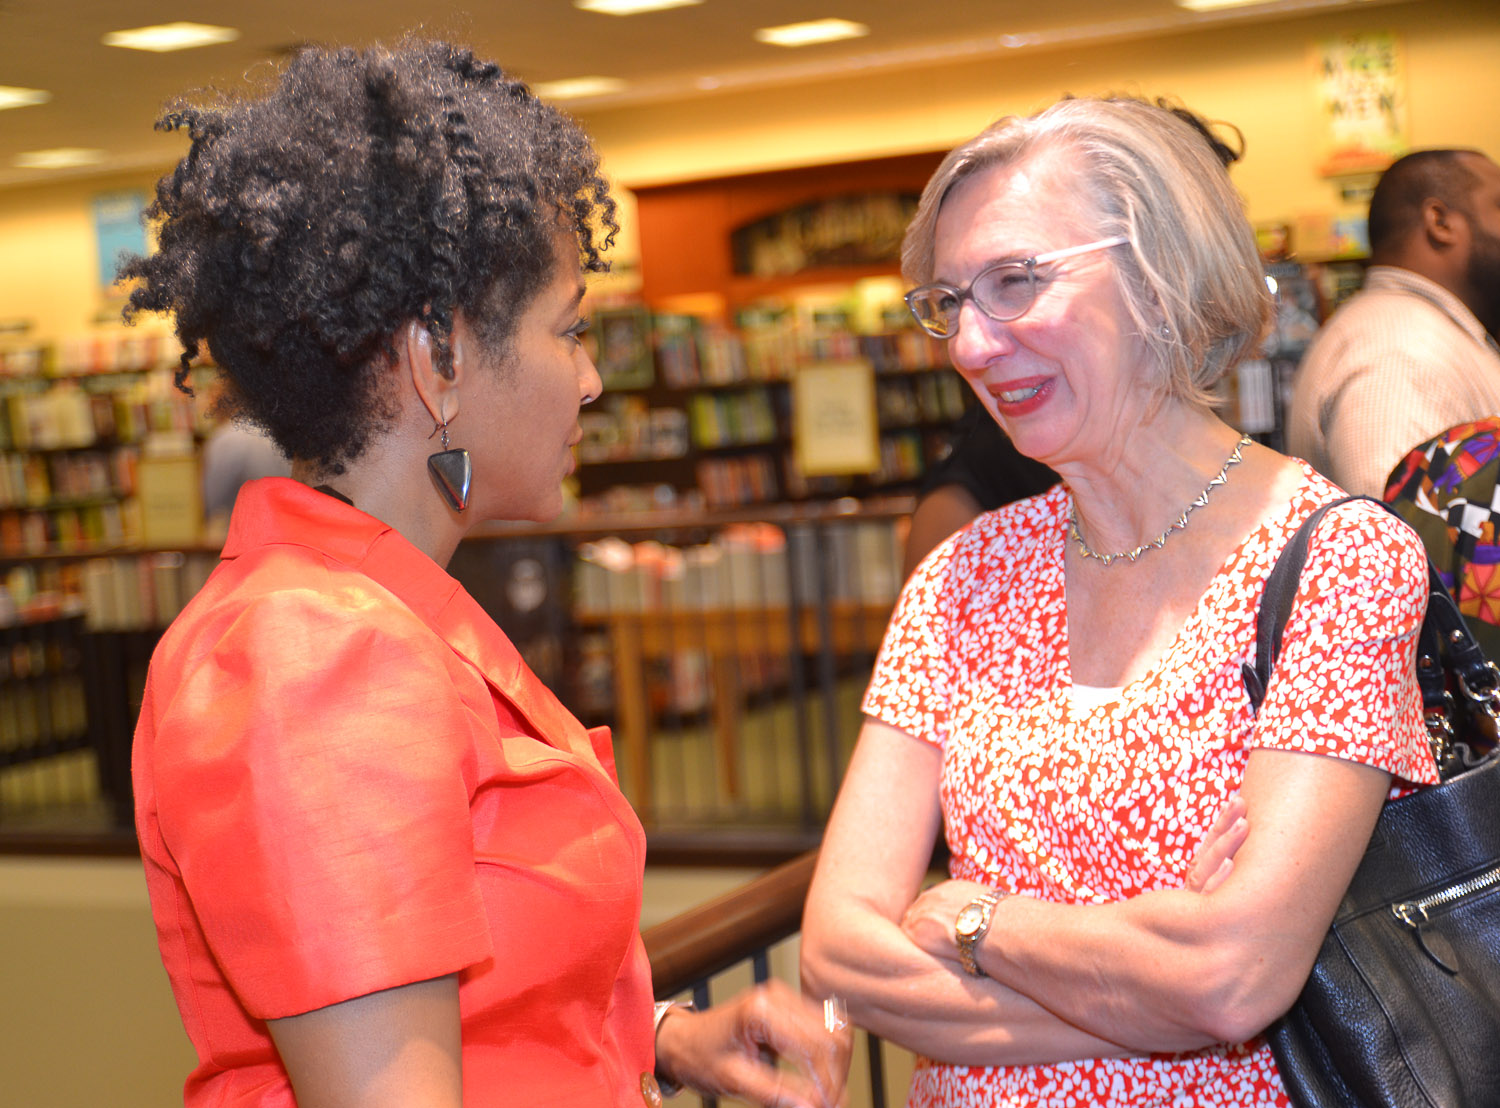 Paster Rudy book signing -0288.jpg